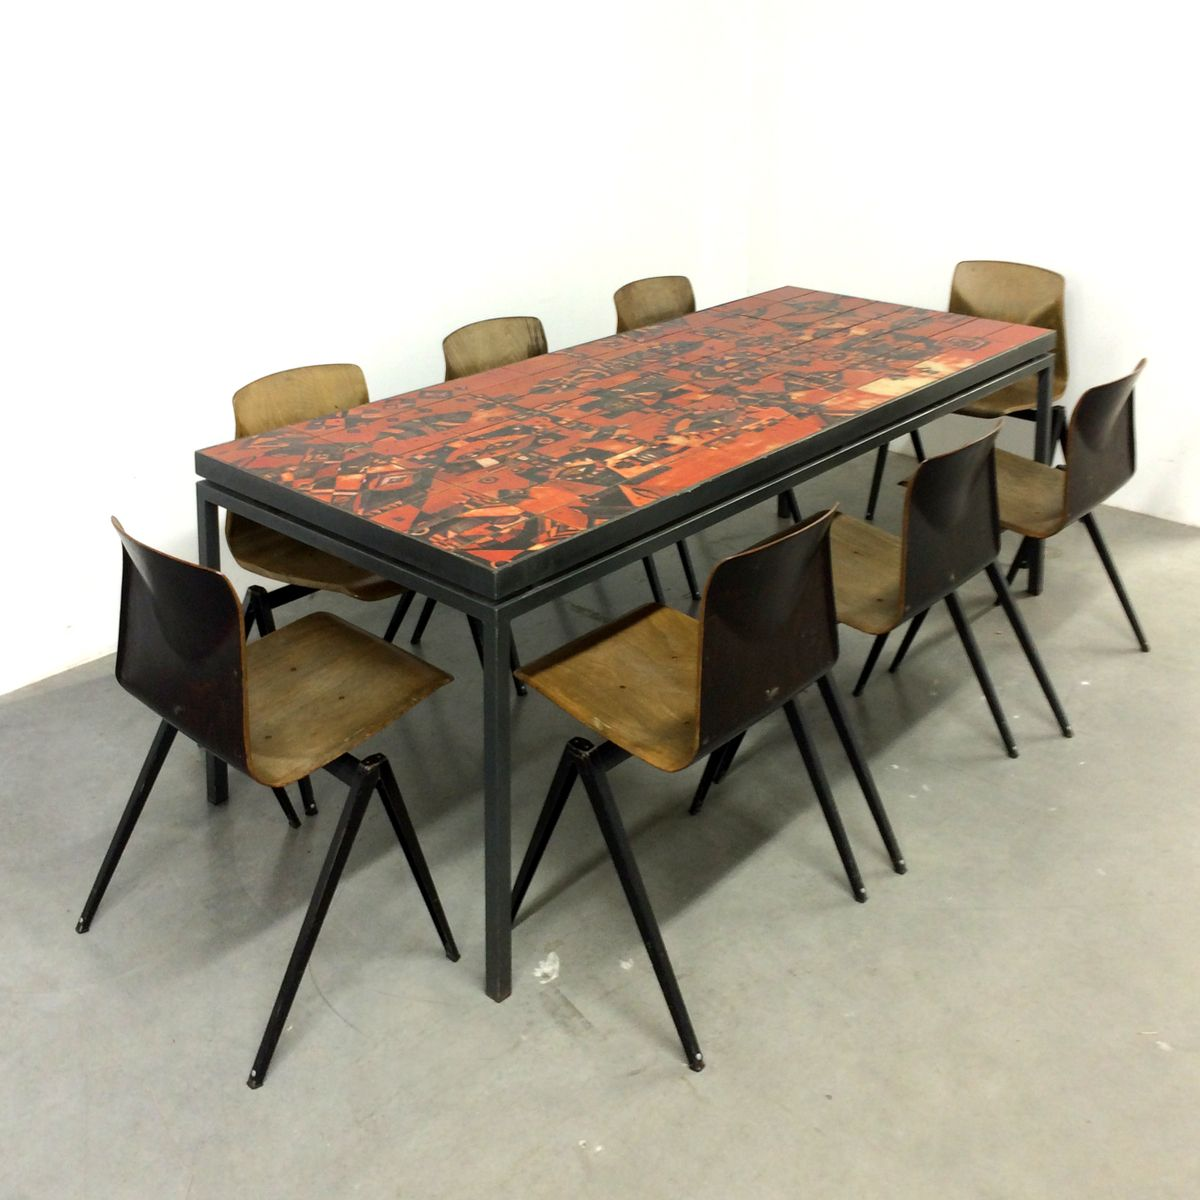 Handmade Dining Table with Tile Top by Wilhelm and Elly Kuch, 1967 ...